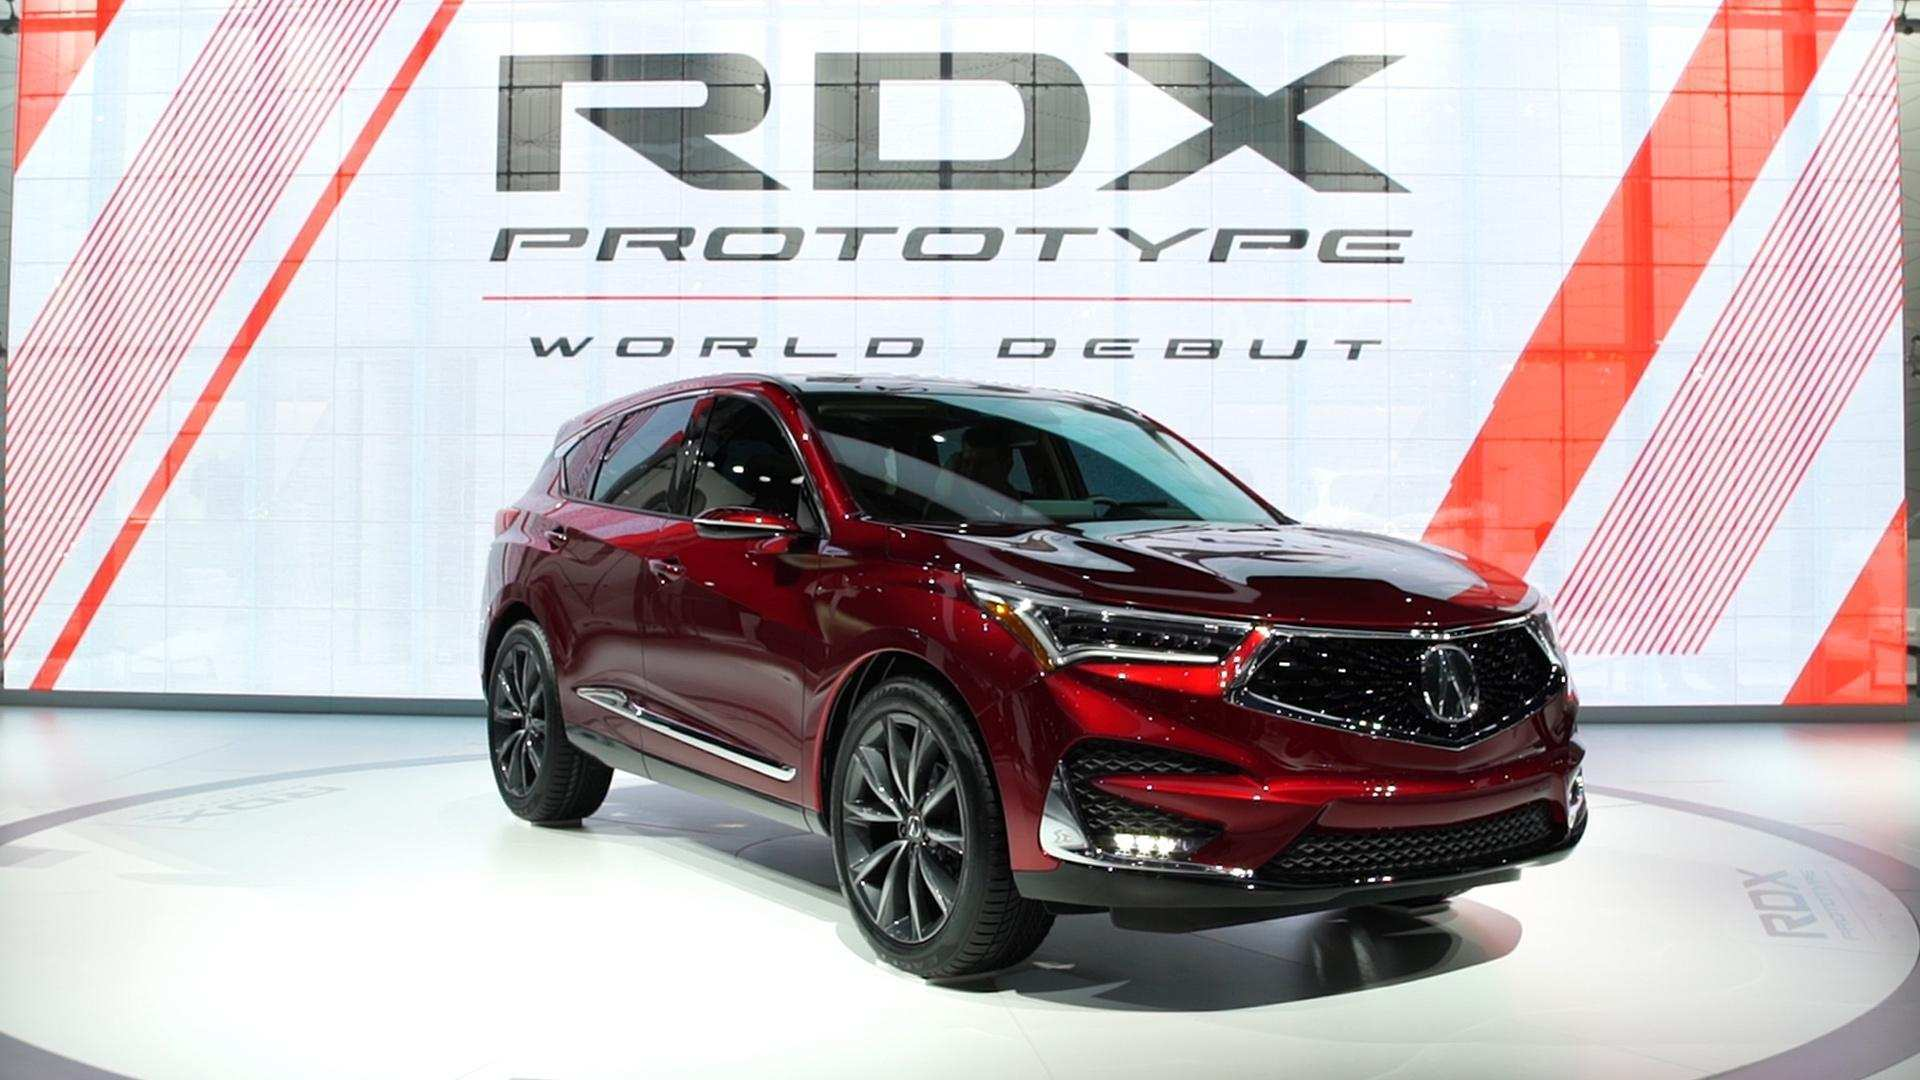 84 Best Review The Acura Rdx 2019 Lane Keep Assist Review New Review with The Acura Rdx 2019 Lane Keep Assist Review